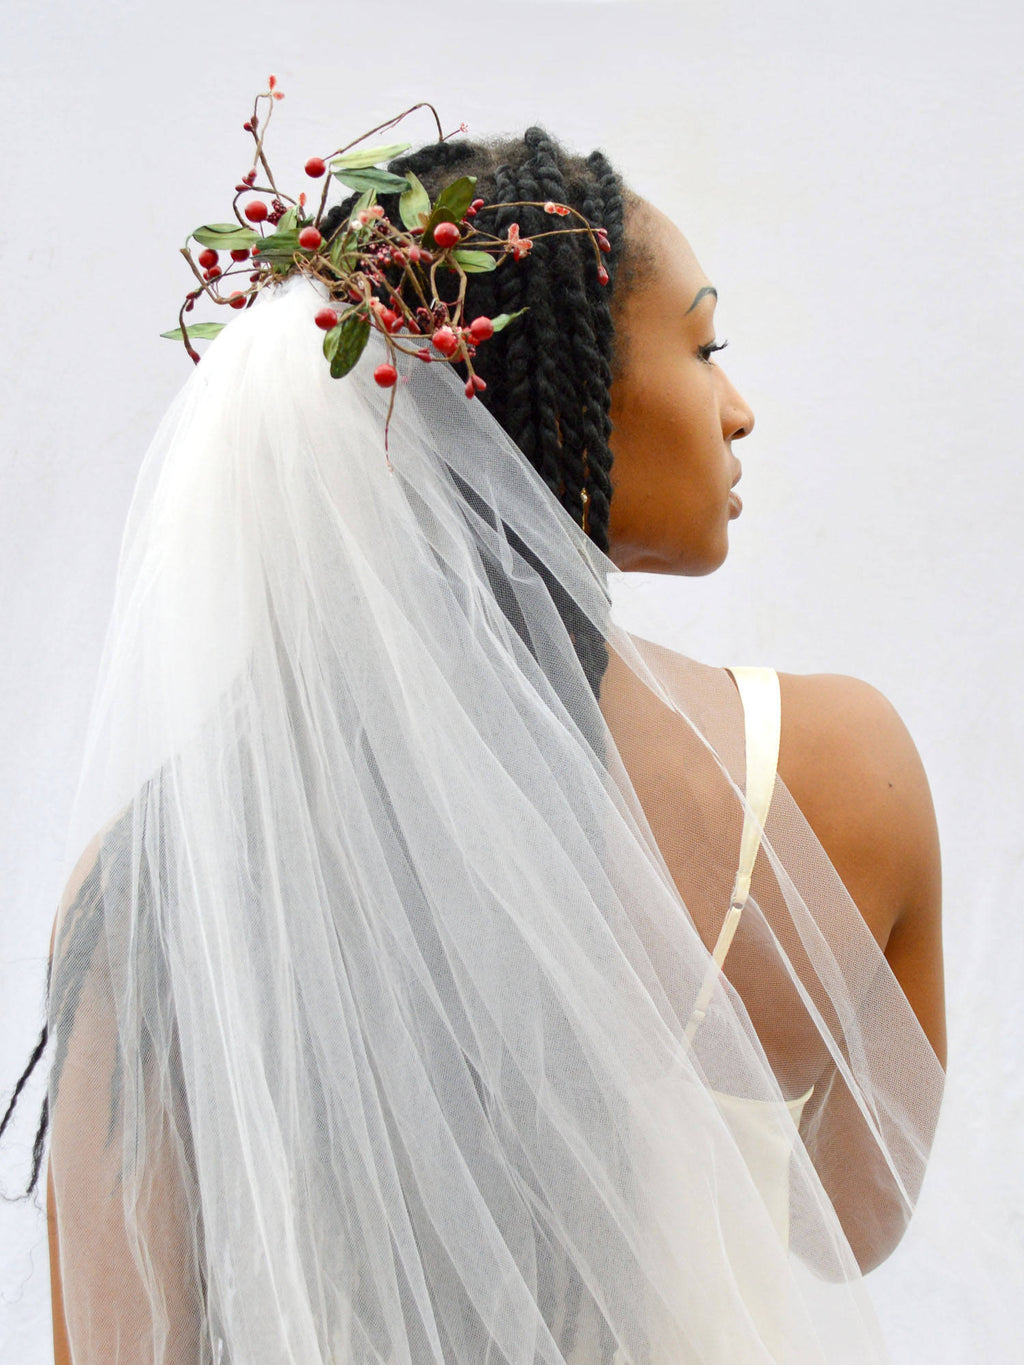 flower crown wedding veil with red berries, branches, and leaves